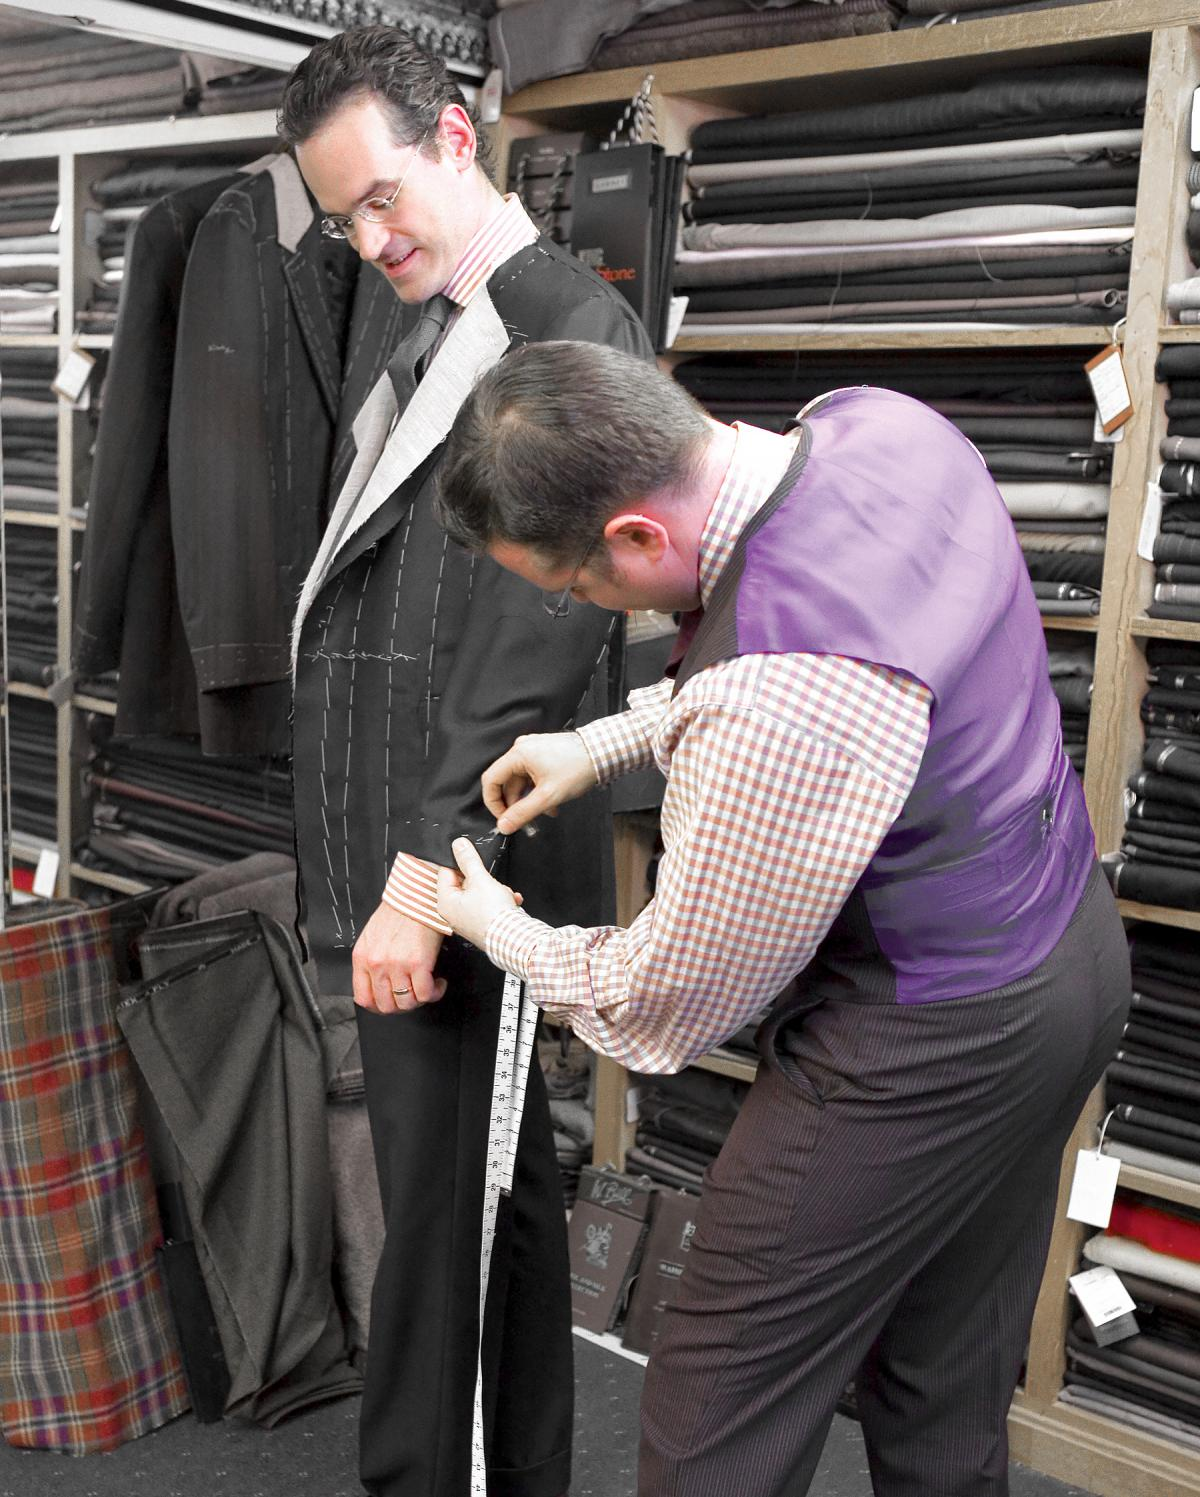 A tailor in a purple vest measures the cuff on Anton's suit jacket